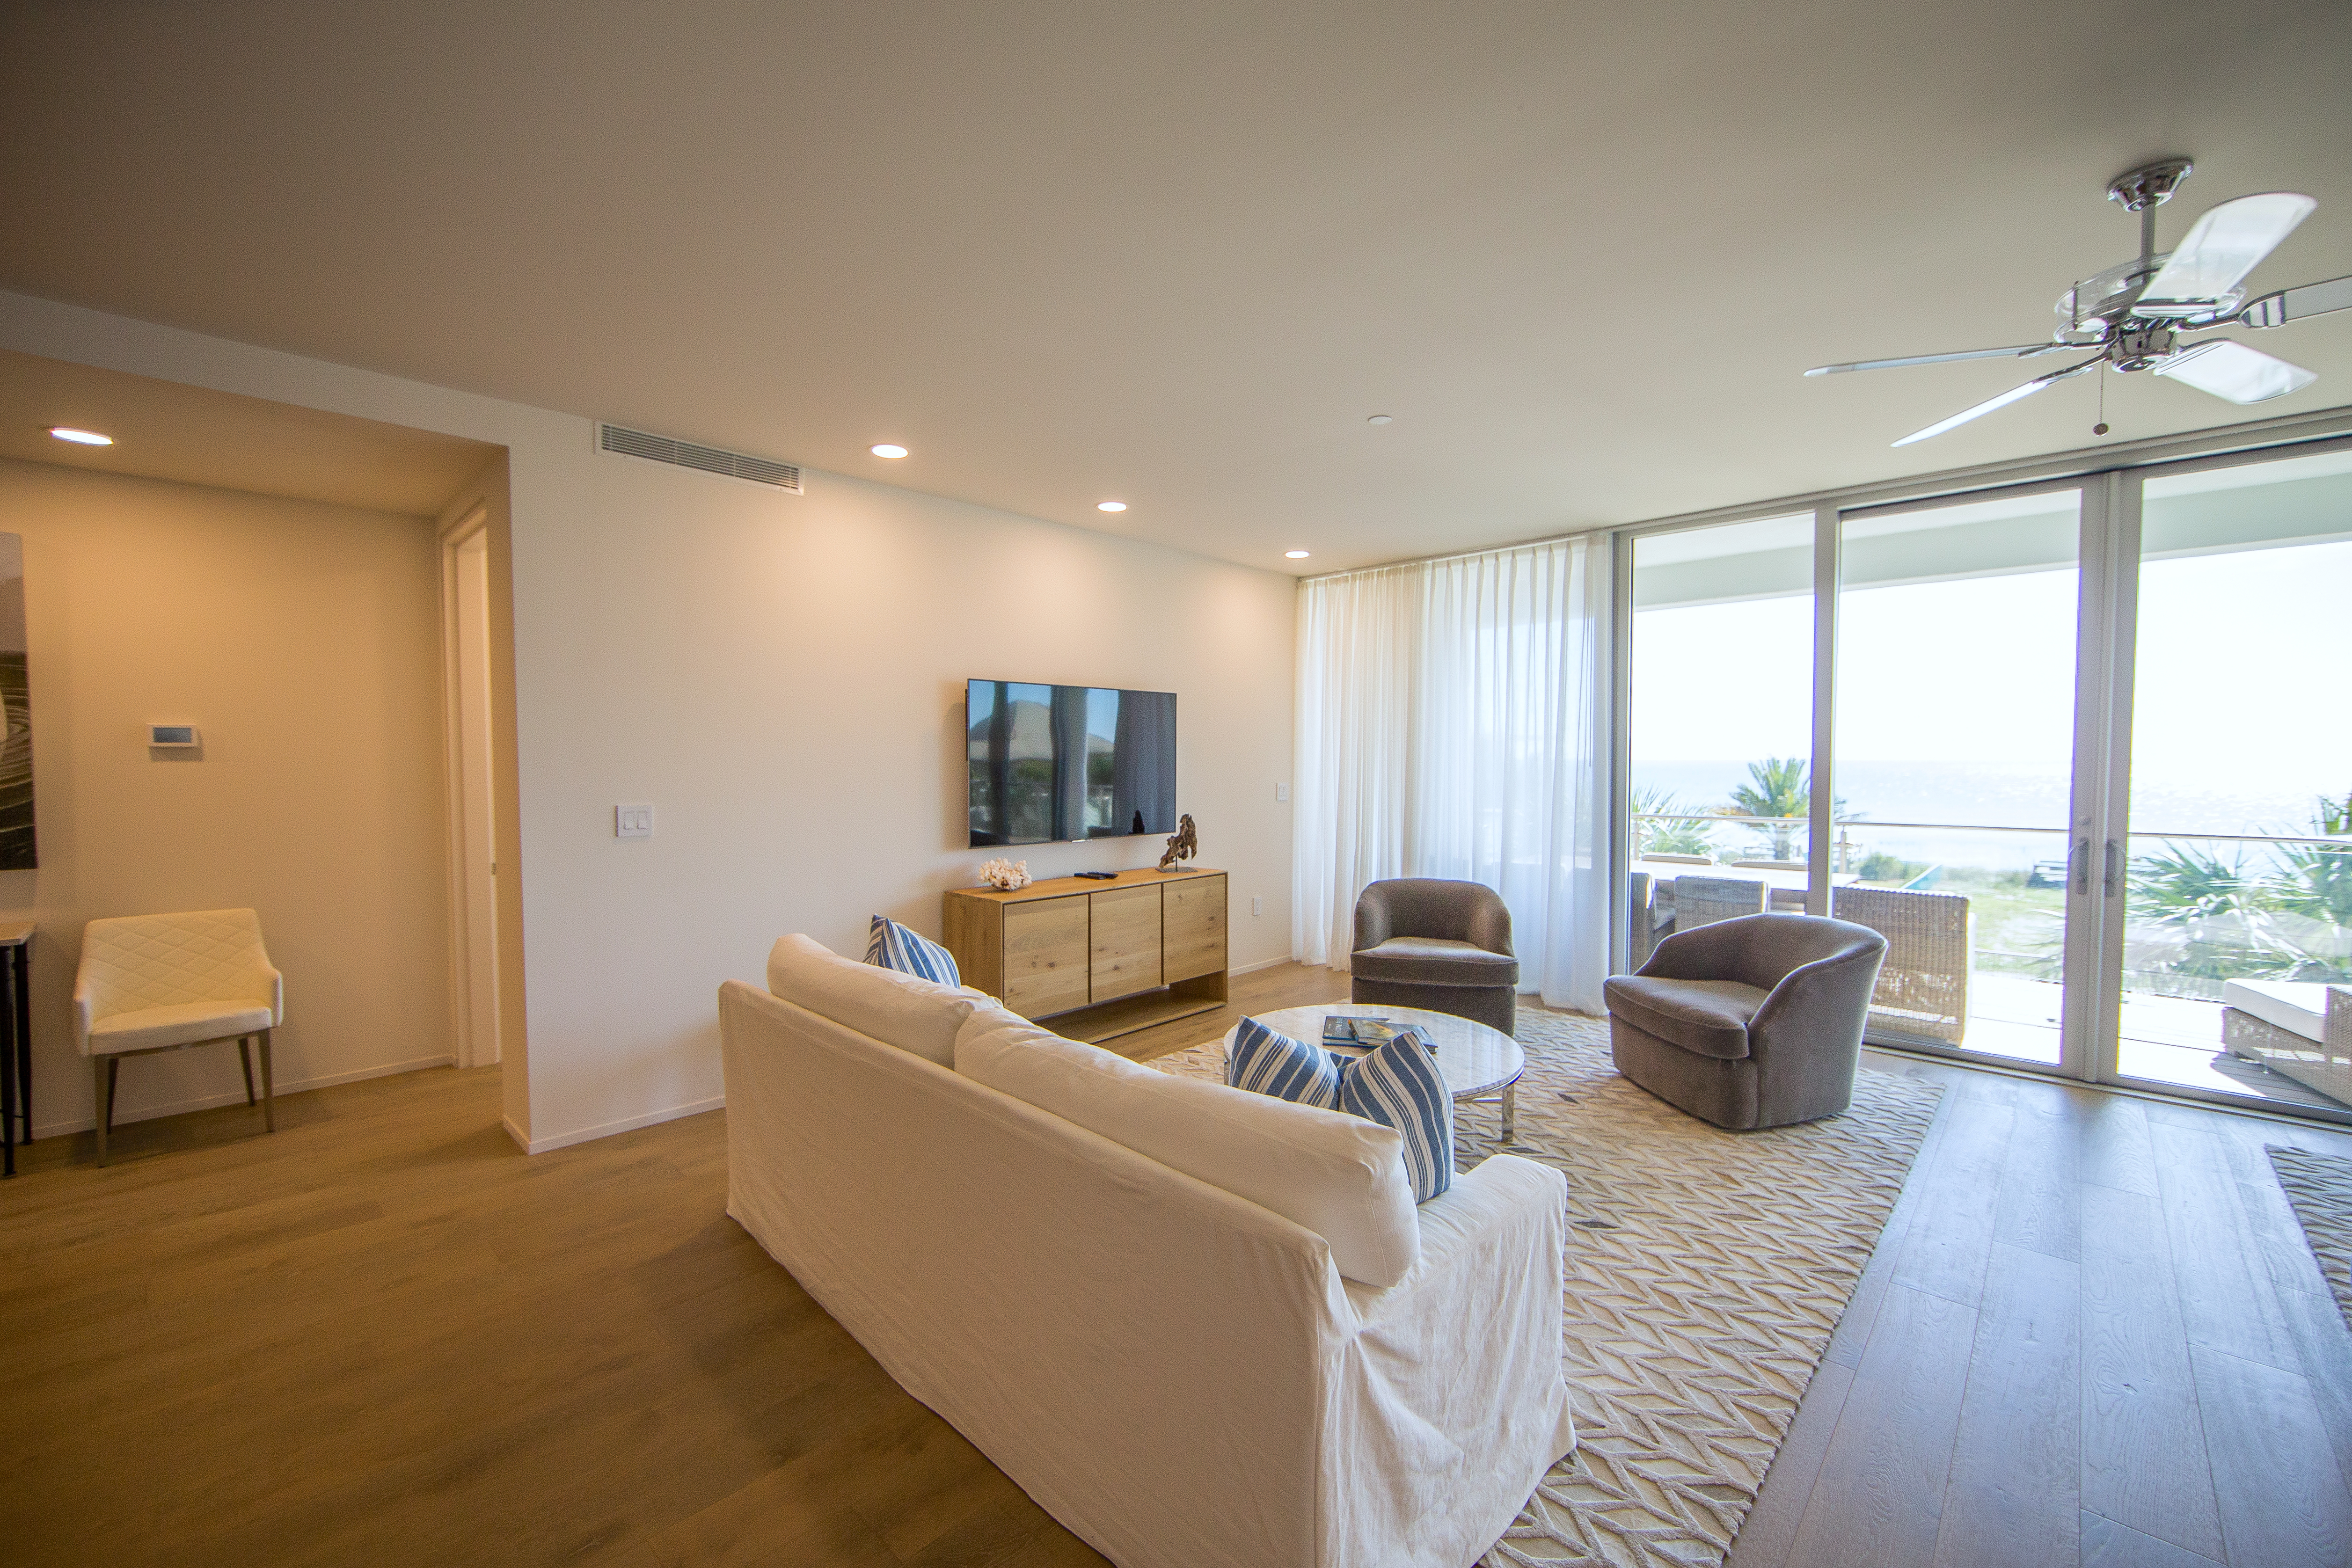 Comfortable seating is featured in the living space